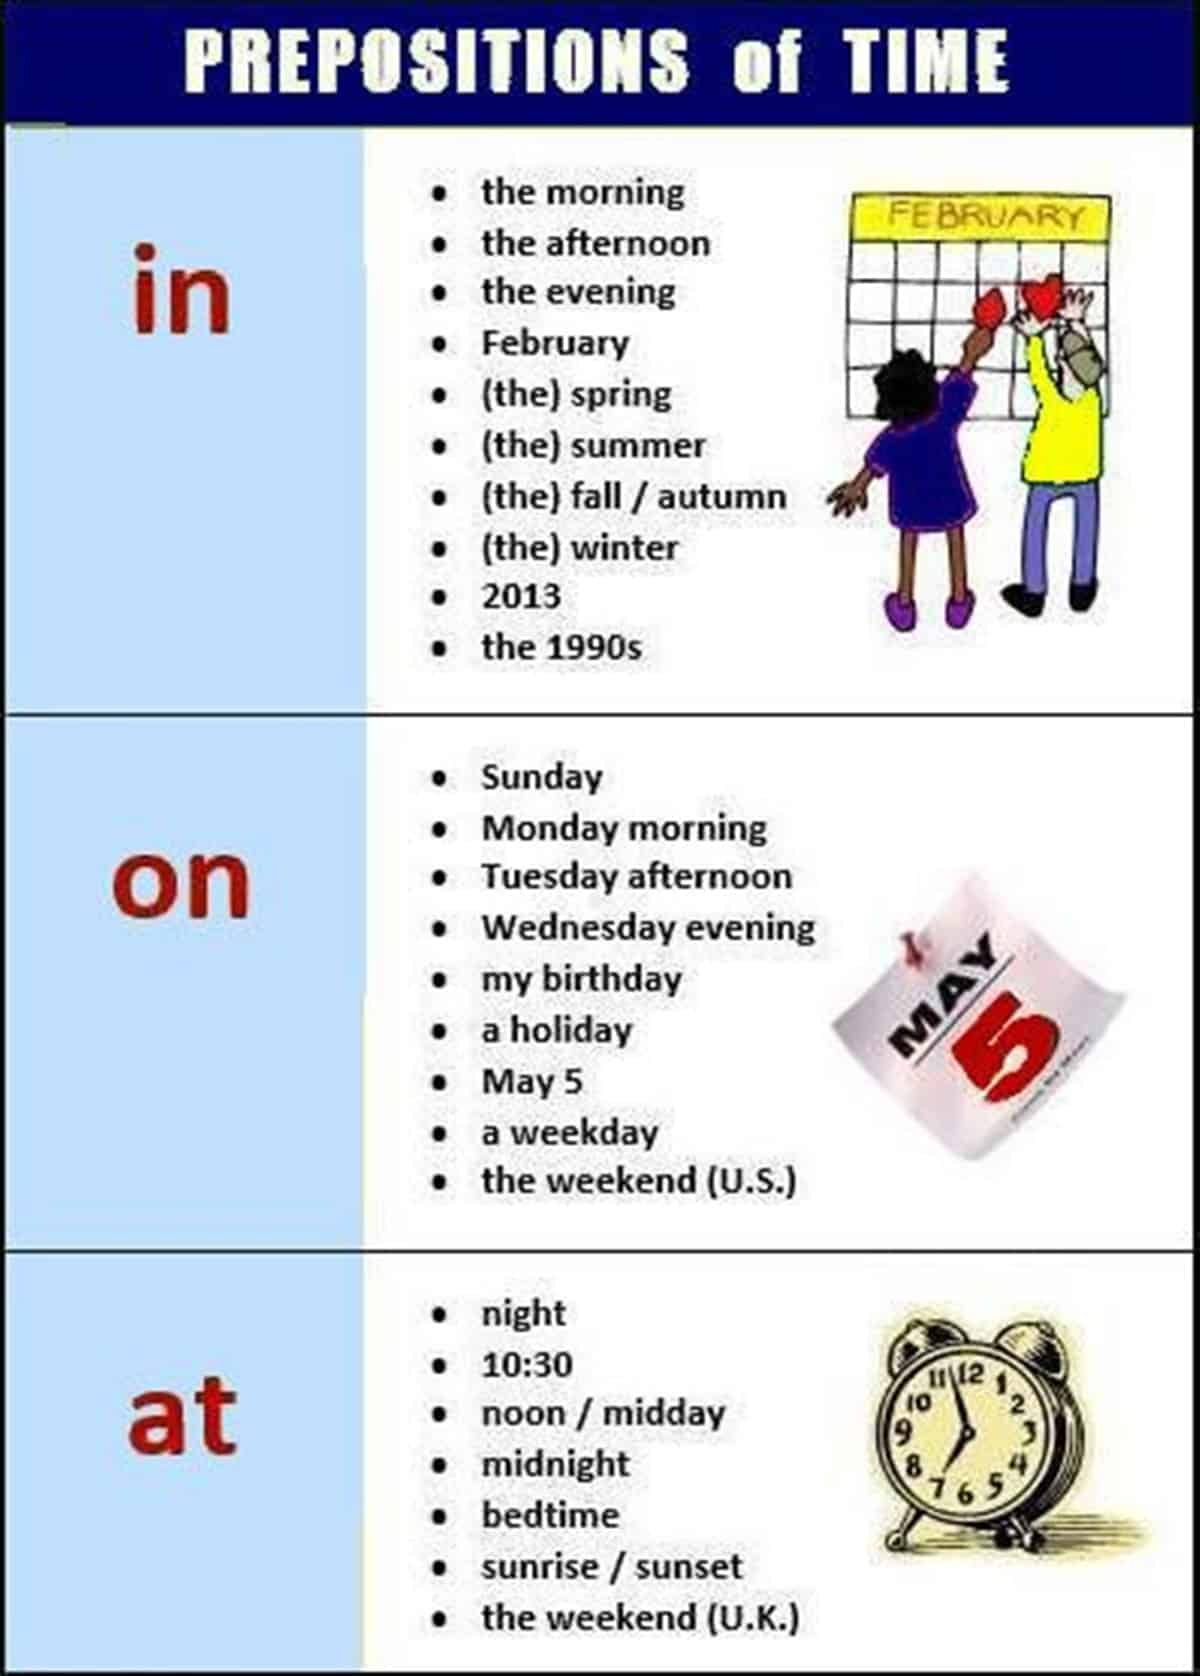 Prepositions of Time - AT / IN / ON